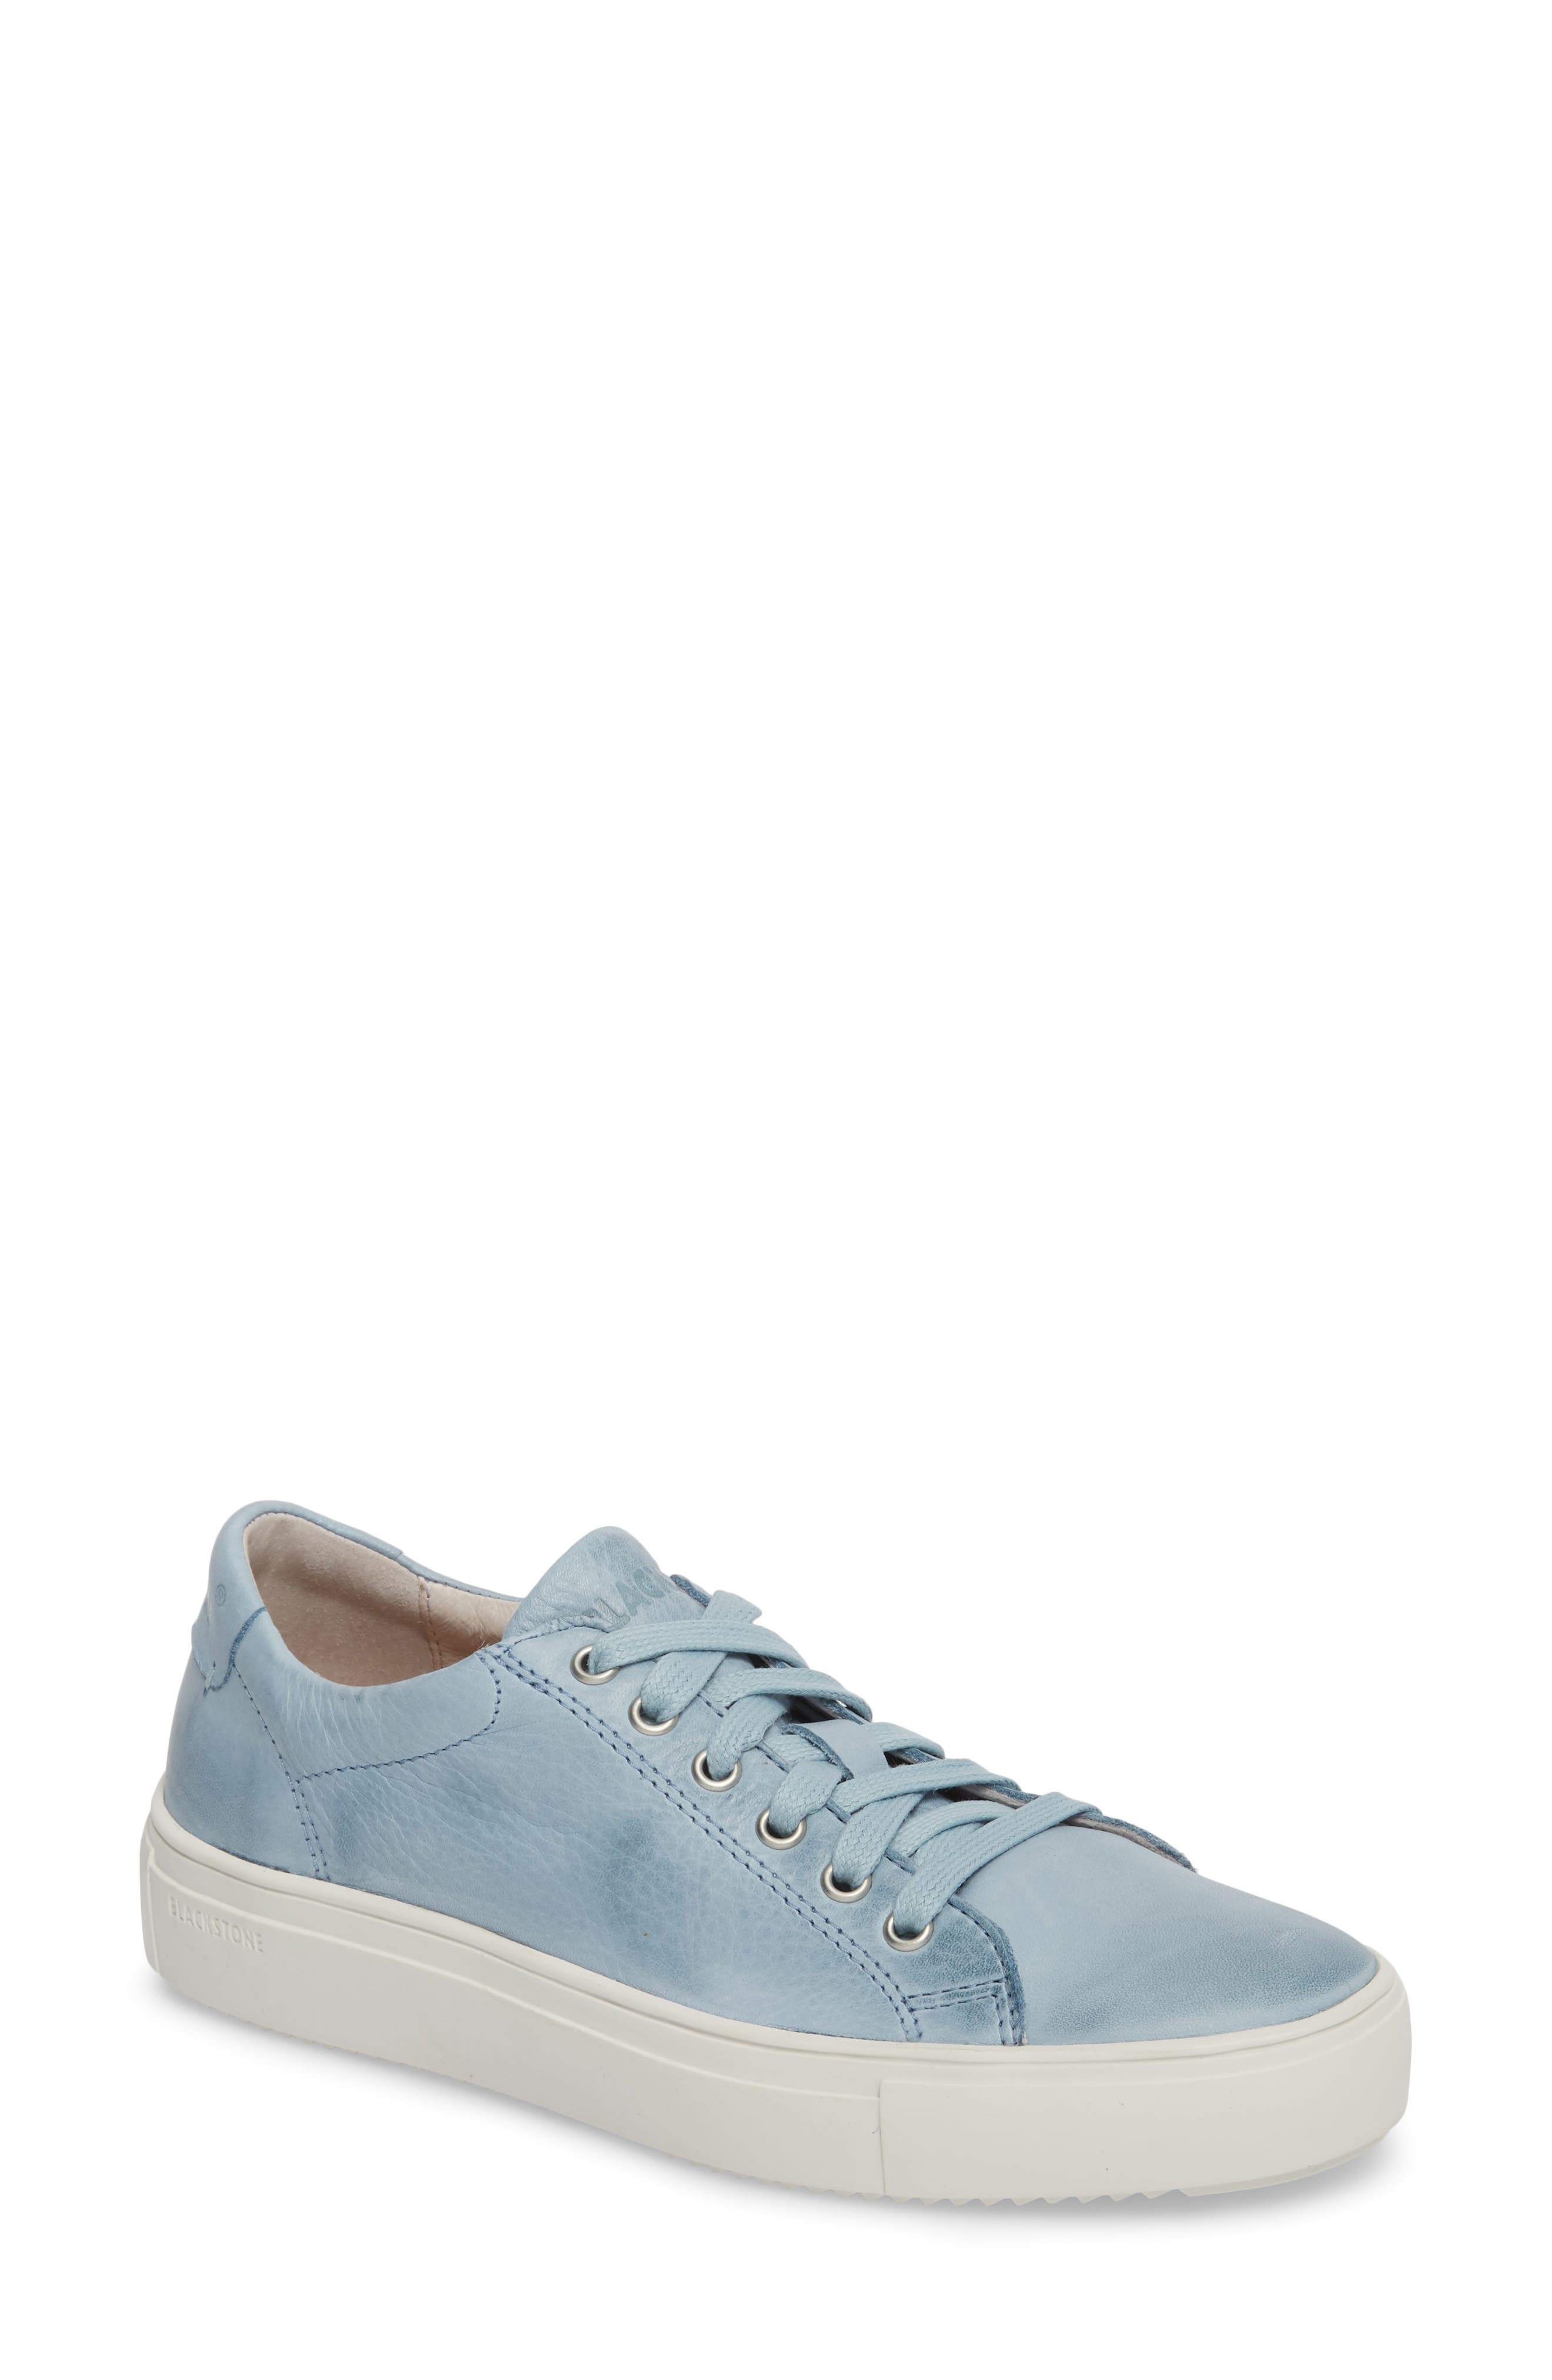 PL71 Low Top Sneaker,                         Main,                         color, Sky Blue Leather